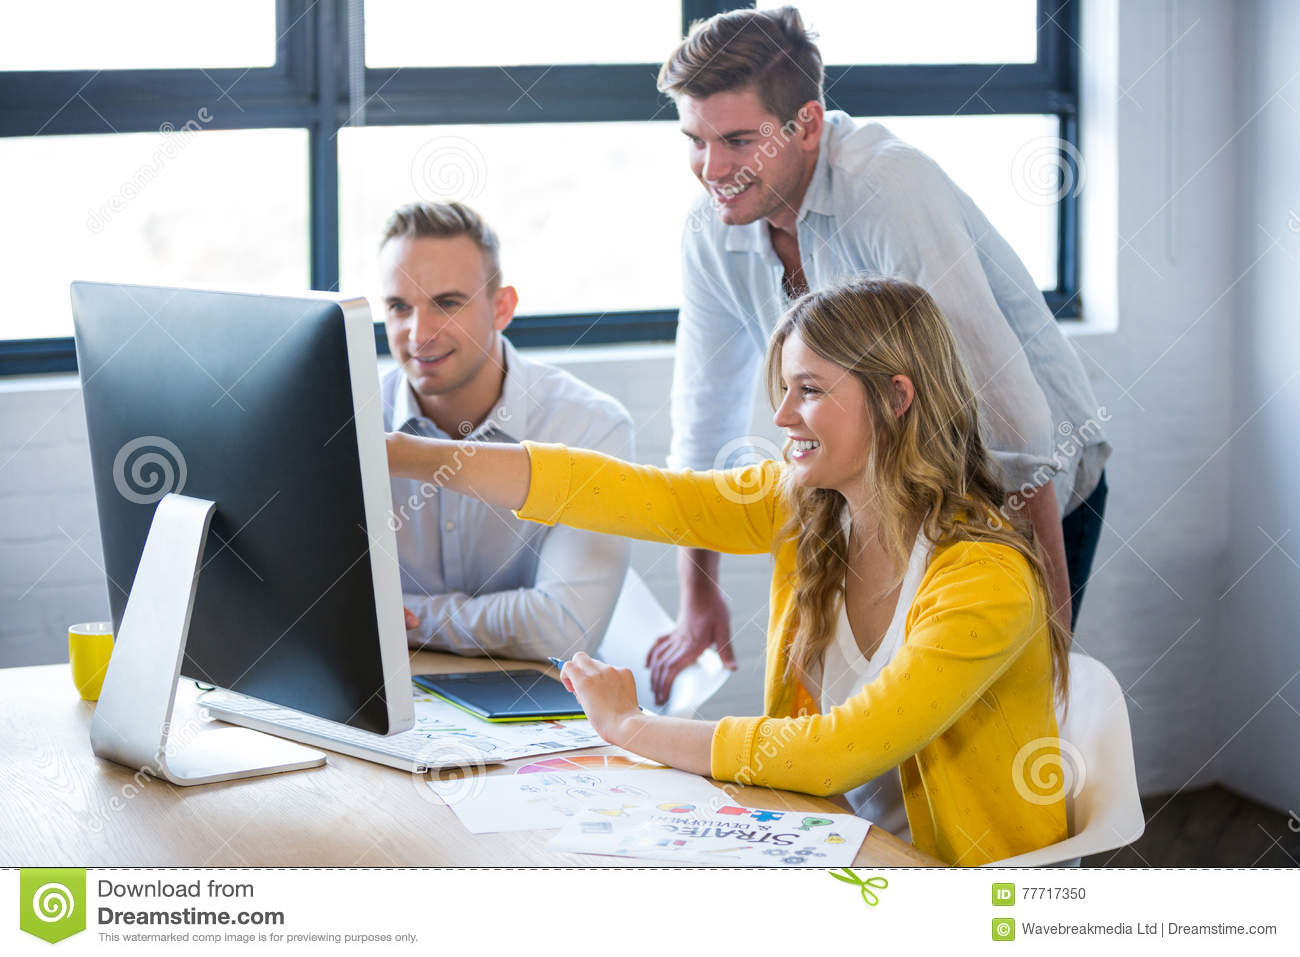 Smiling business people discussing over computer